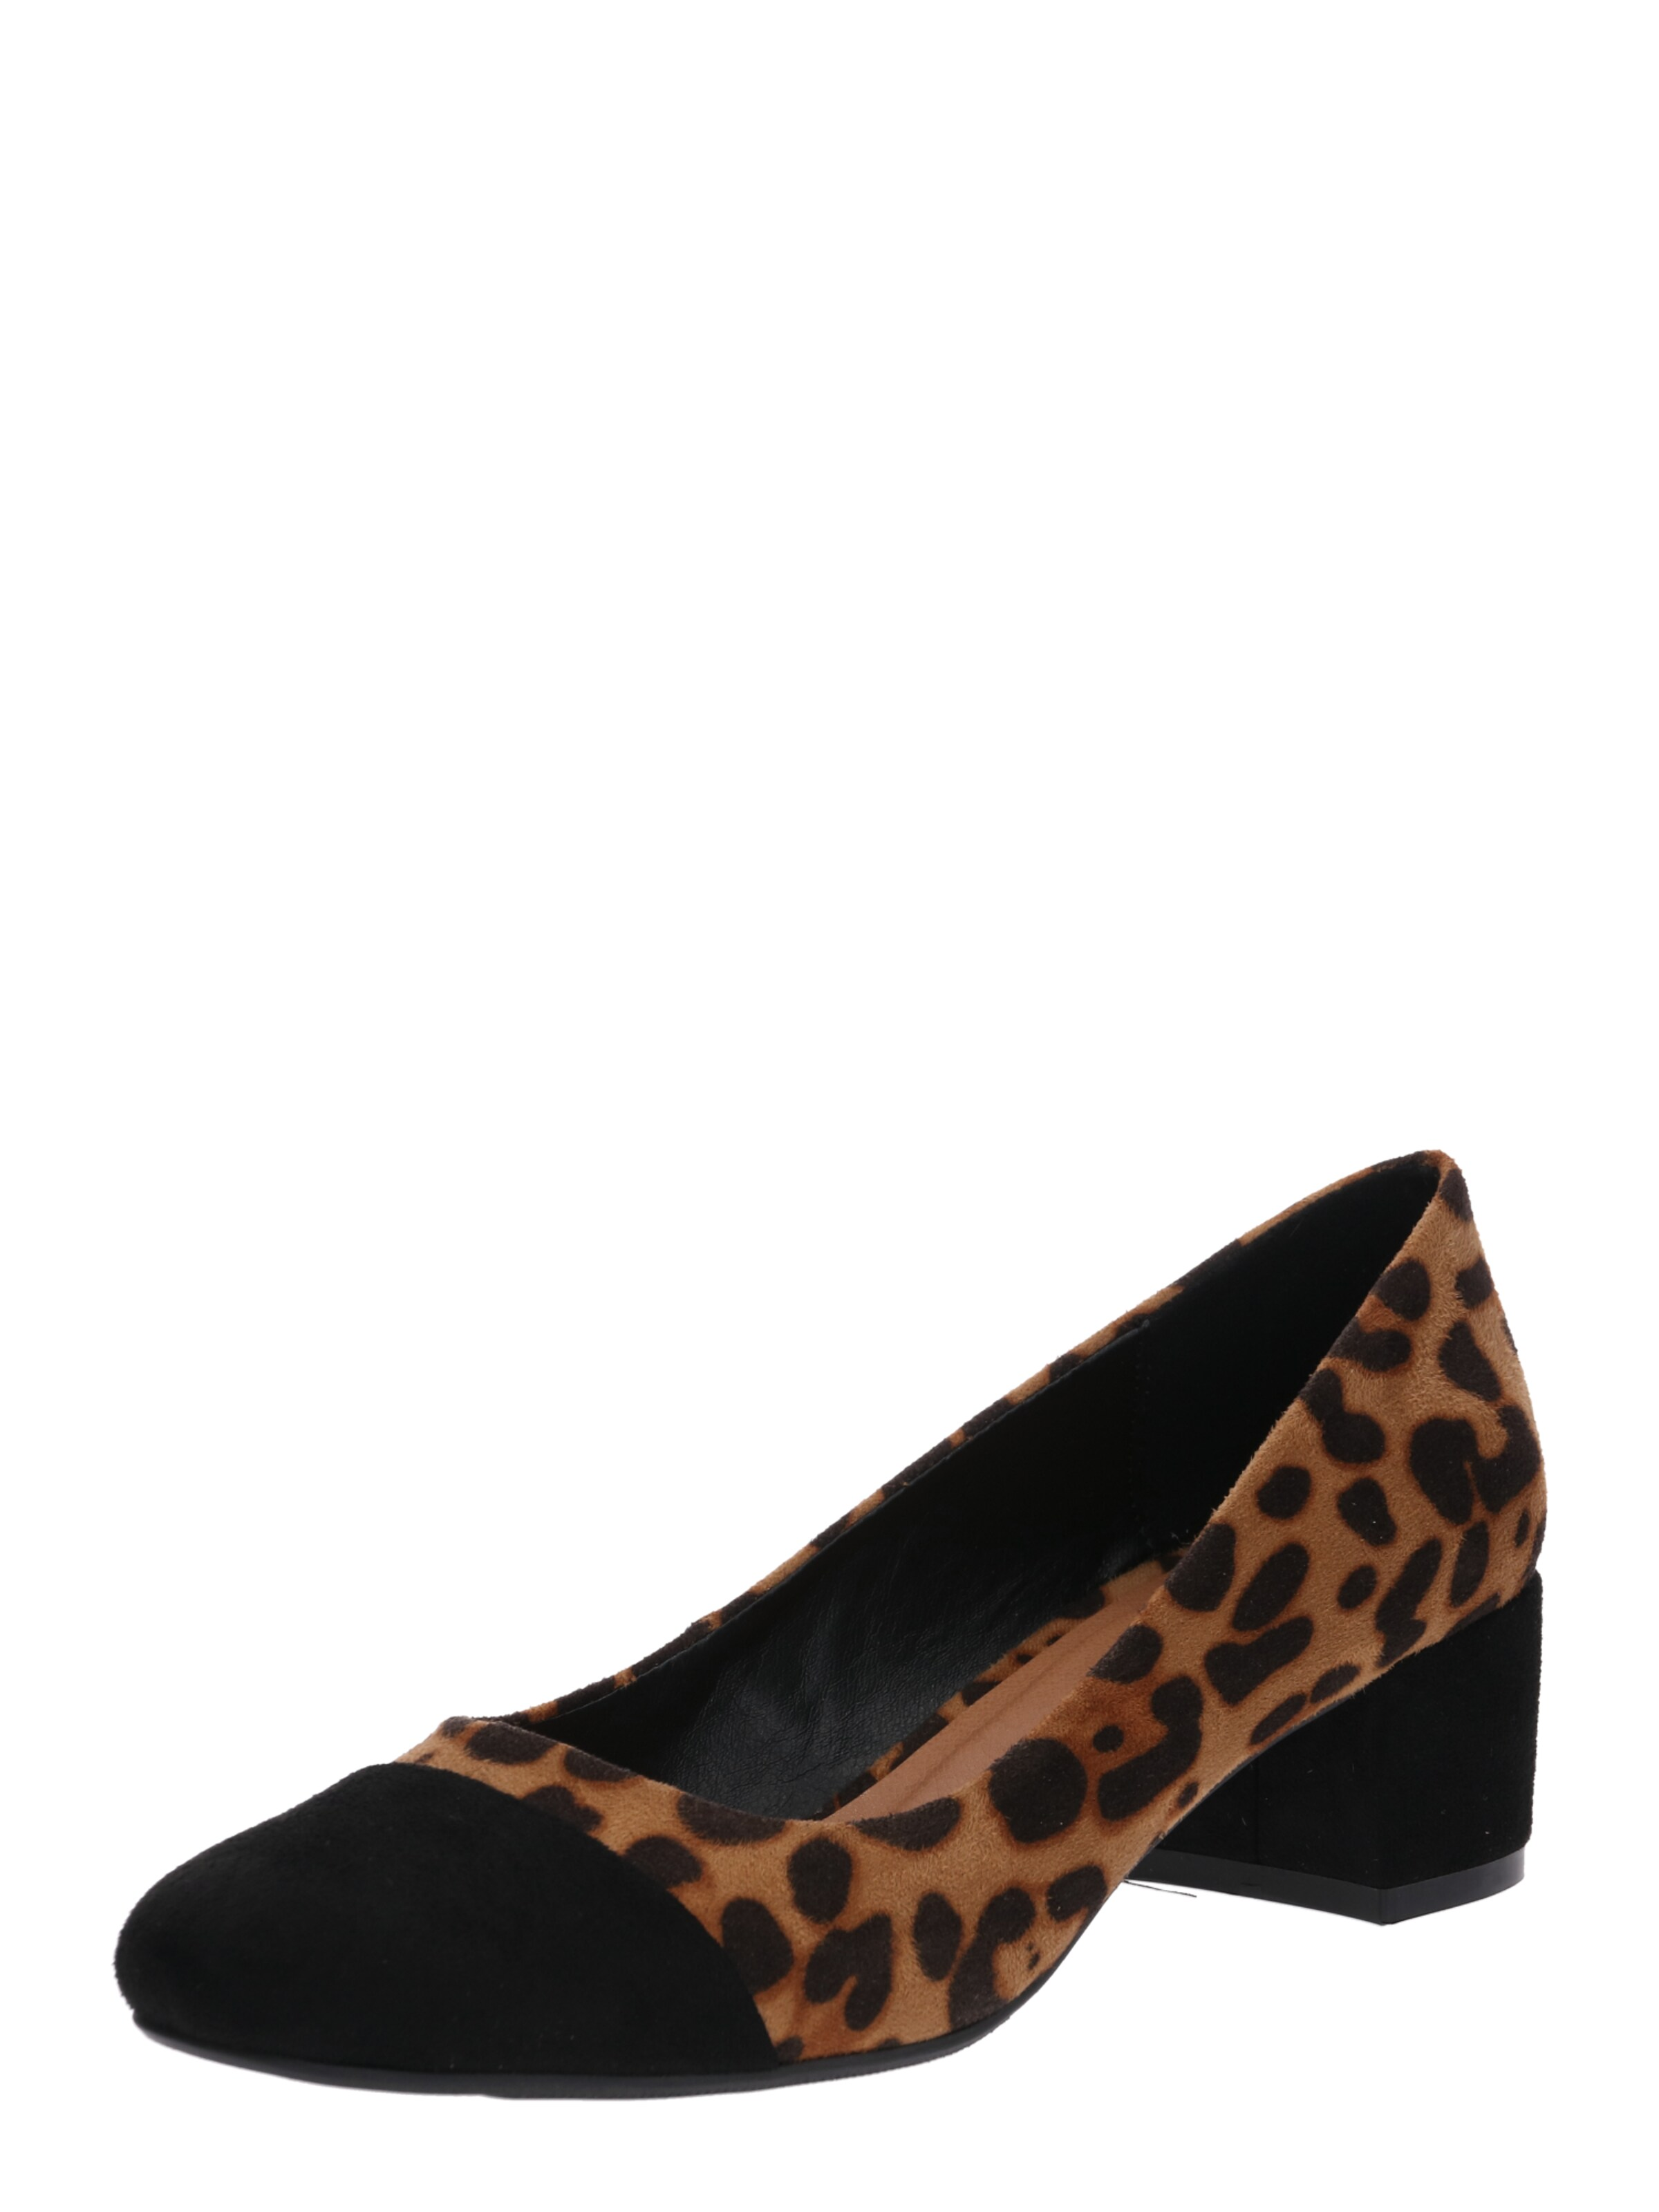 'tarja' Pumps About You Braun In Y7ybf6g